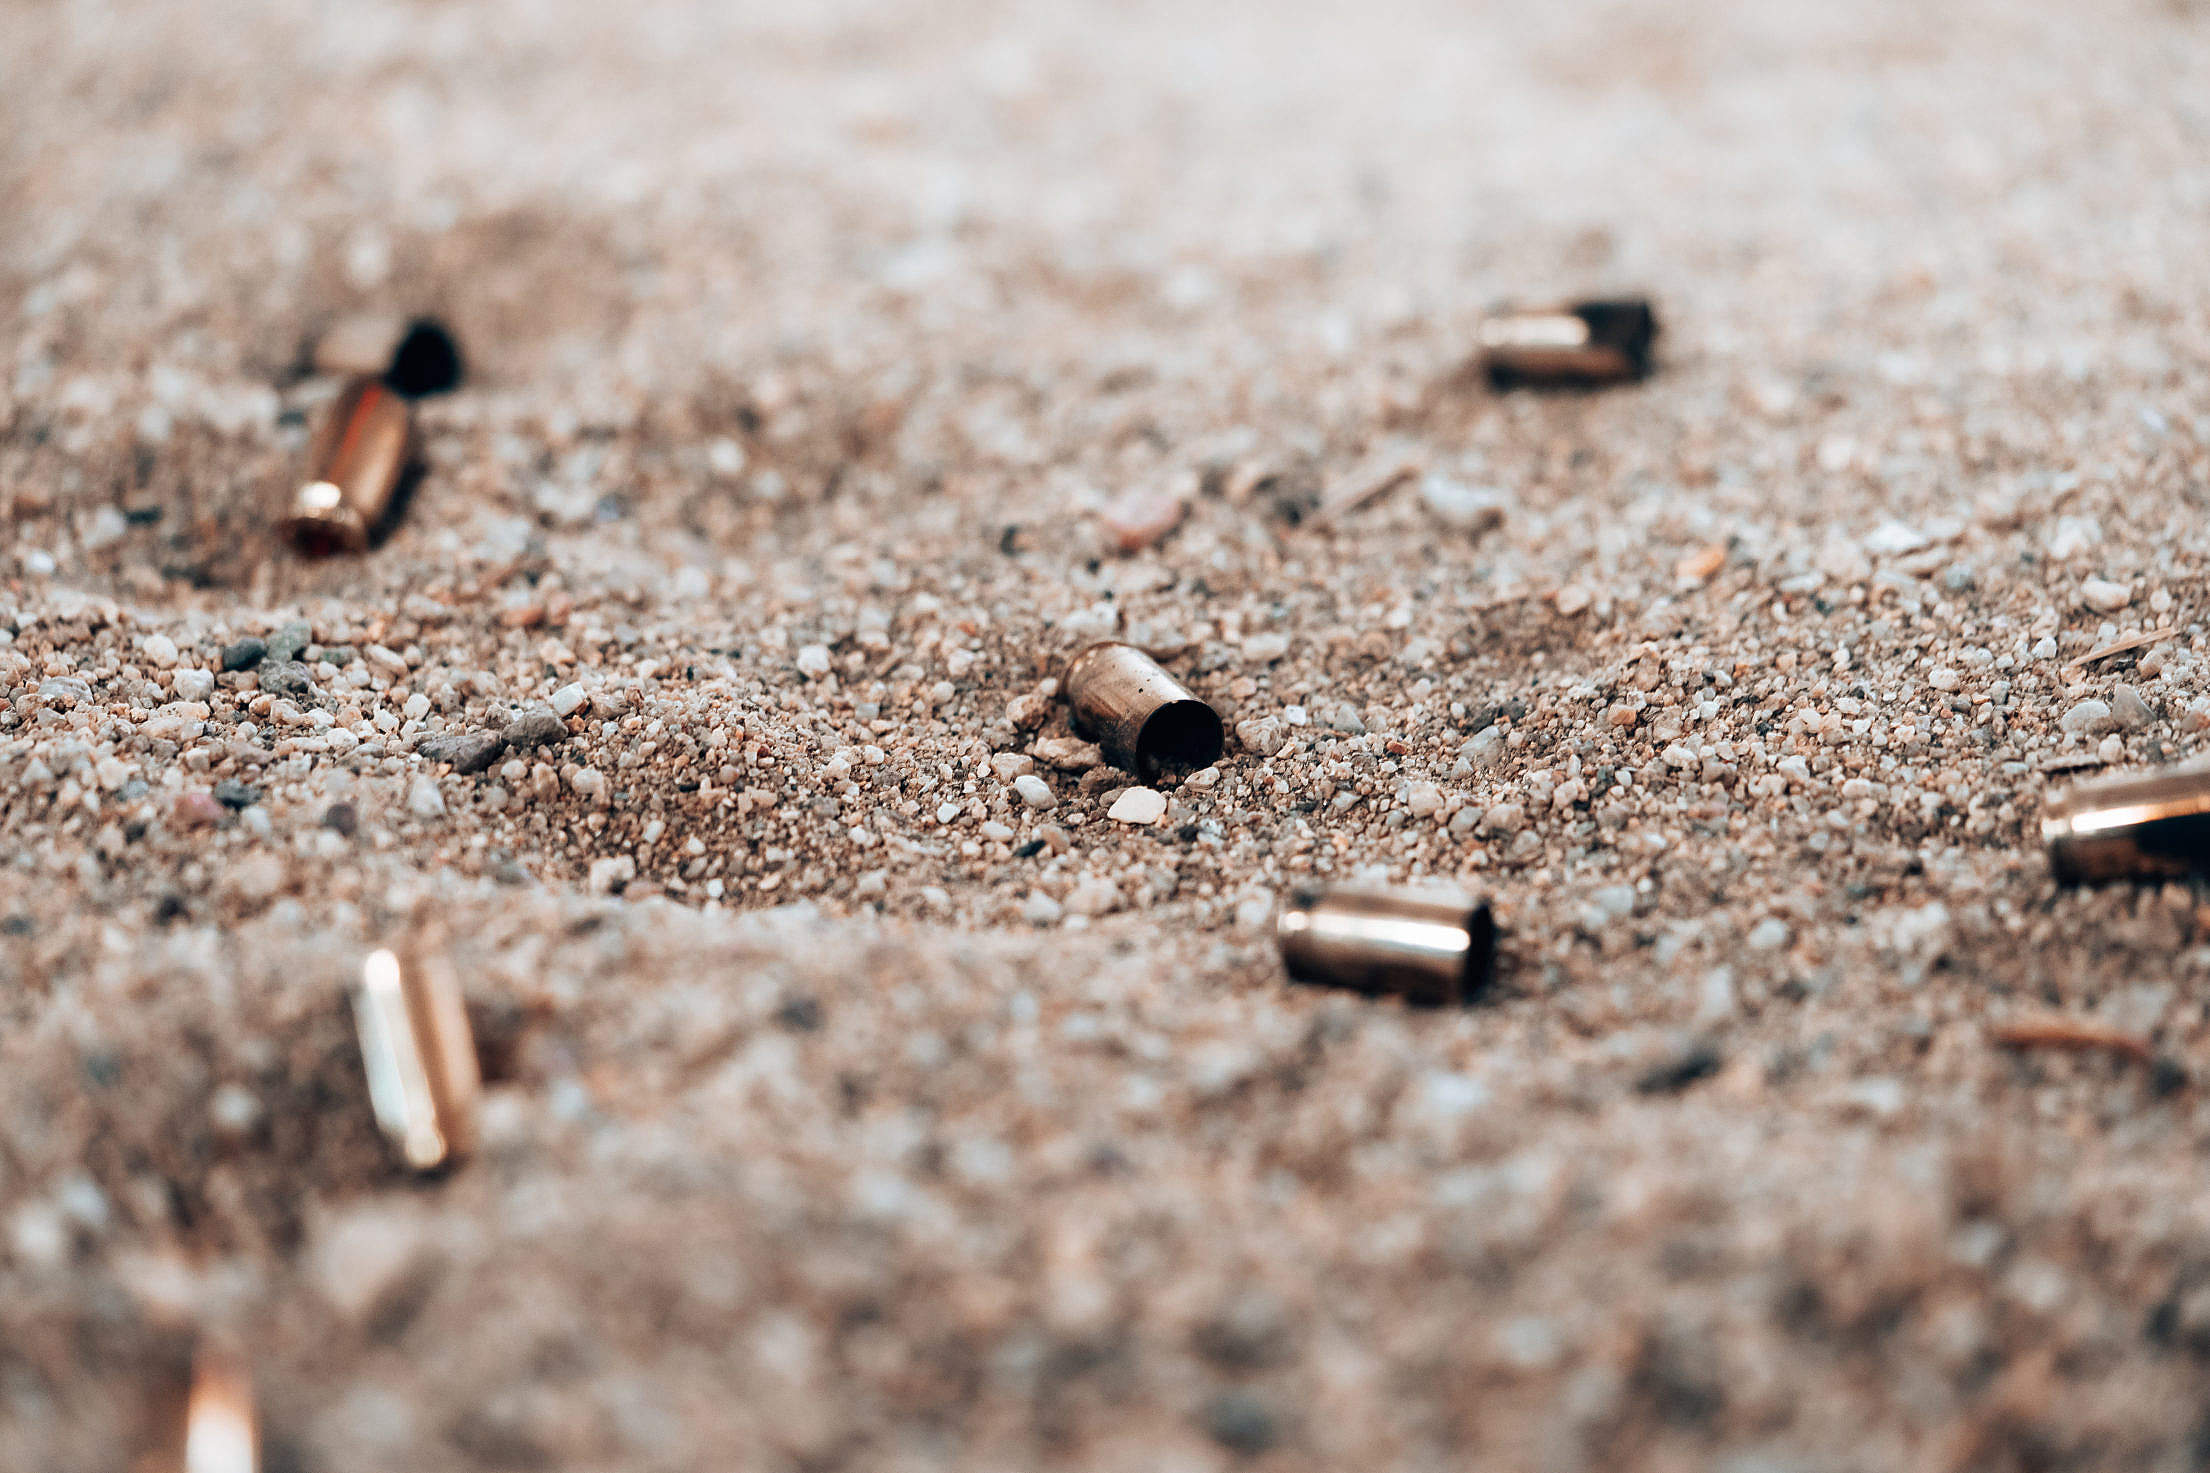 Fired Bullets Free Stock Photo